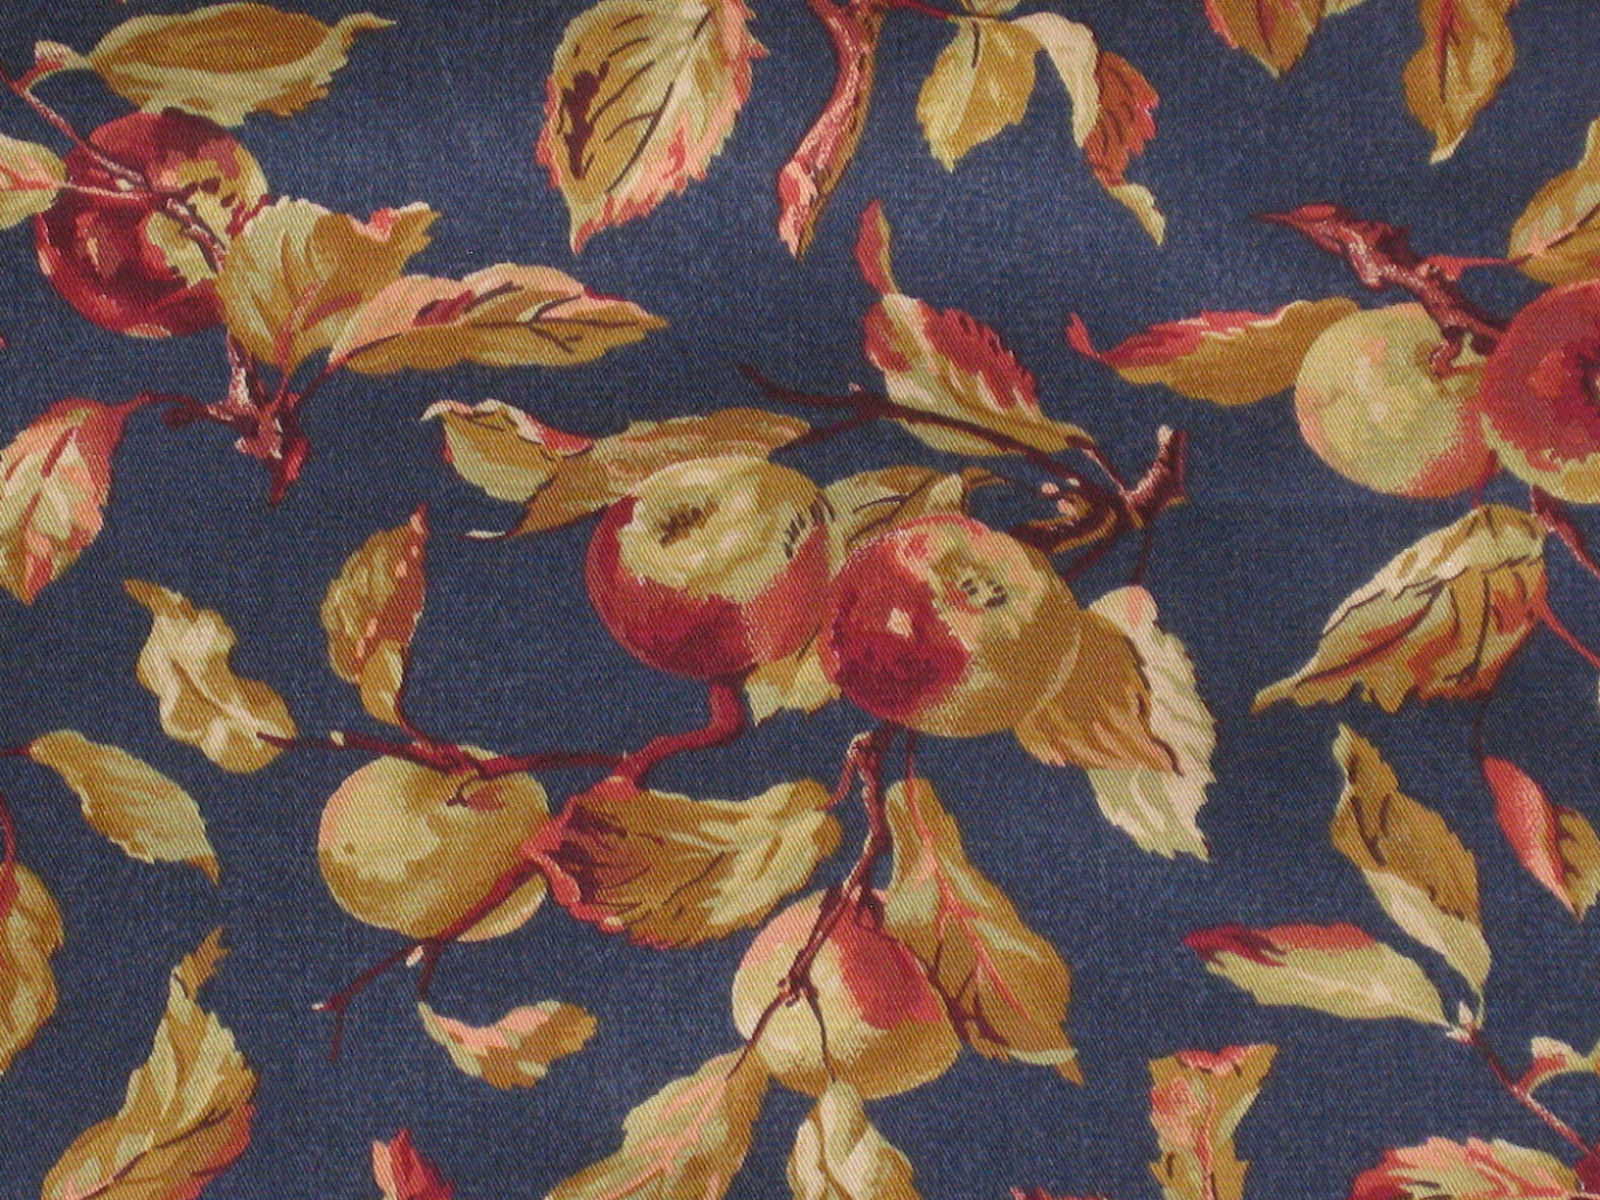 Primary image for Longaberger Small Berry Blueberry Booking Basket Harvest Fabric DI Liner Only